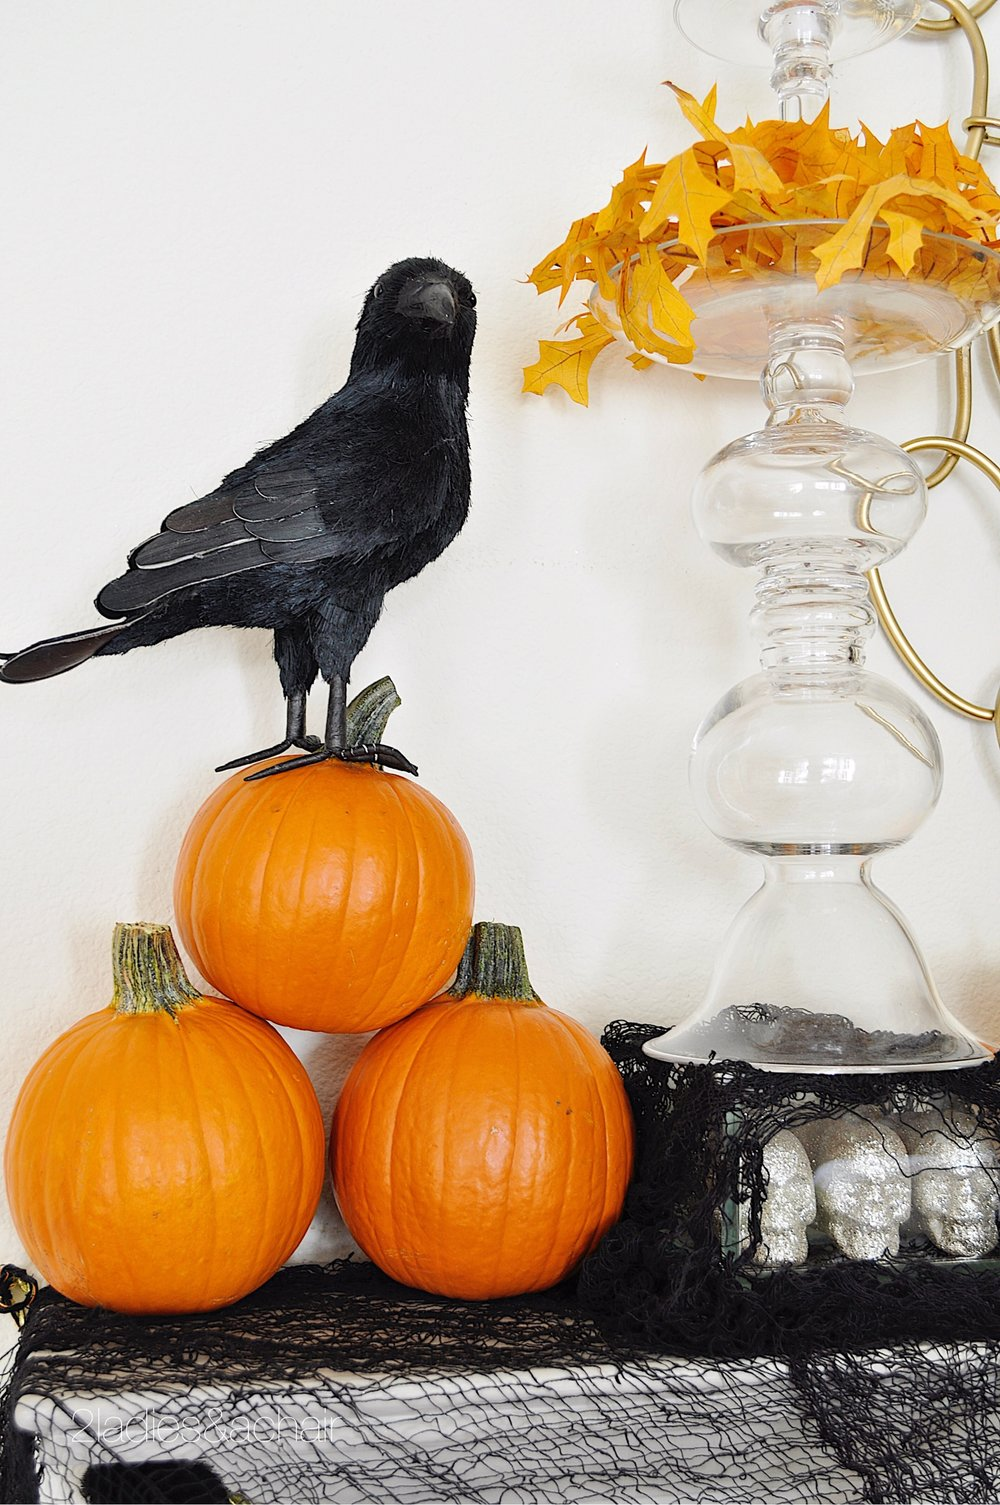 halloween mantel decorations IMG_8225.JPG